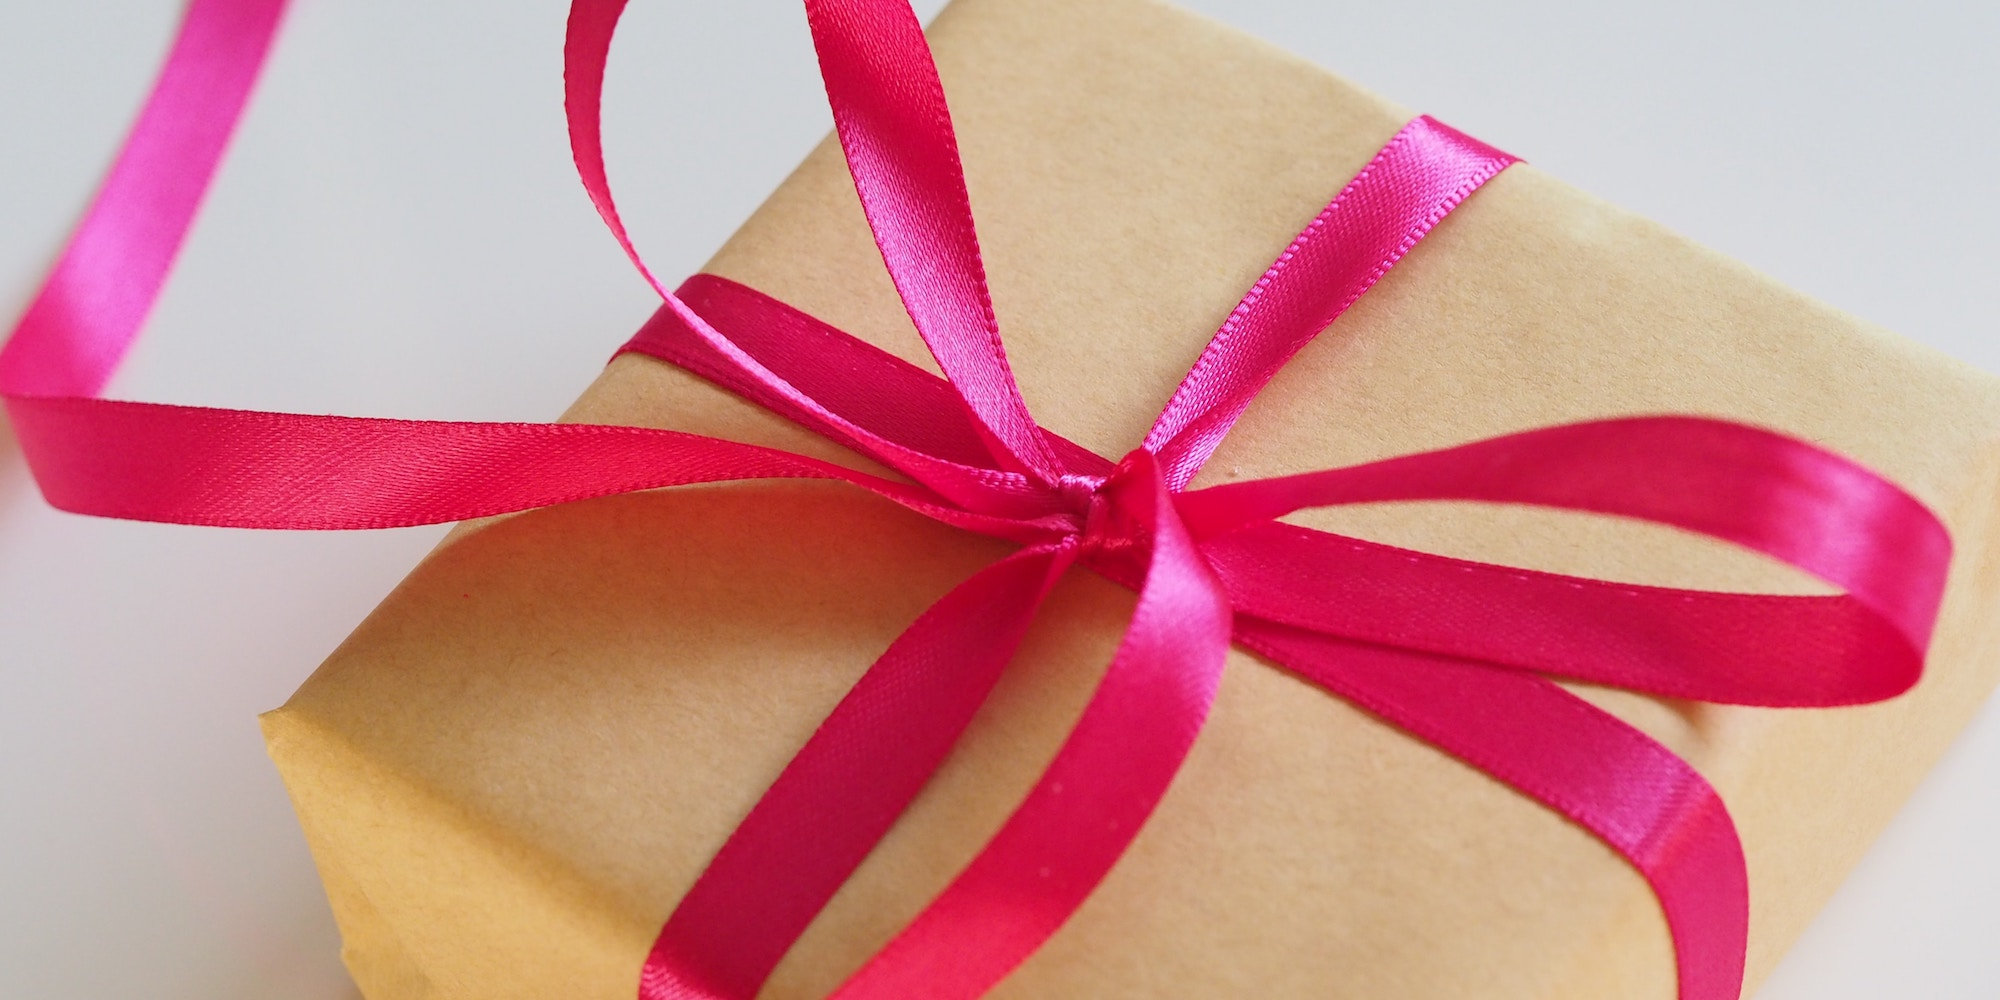 A package with a pink ribbon to symbolize Web Bundles